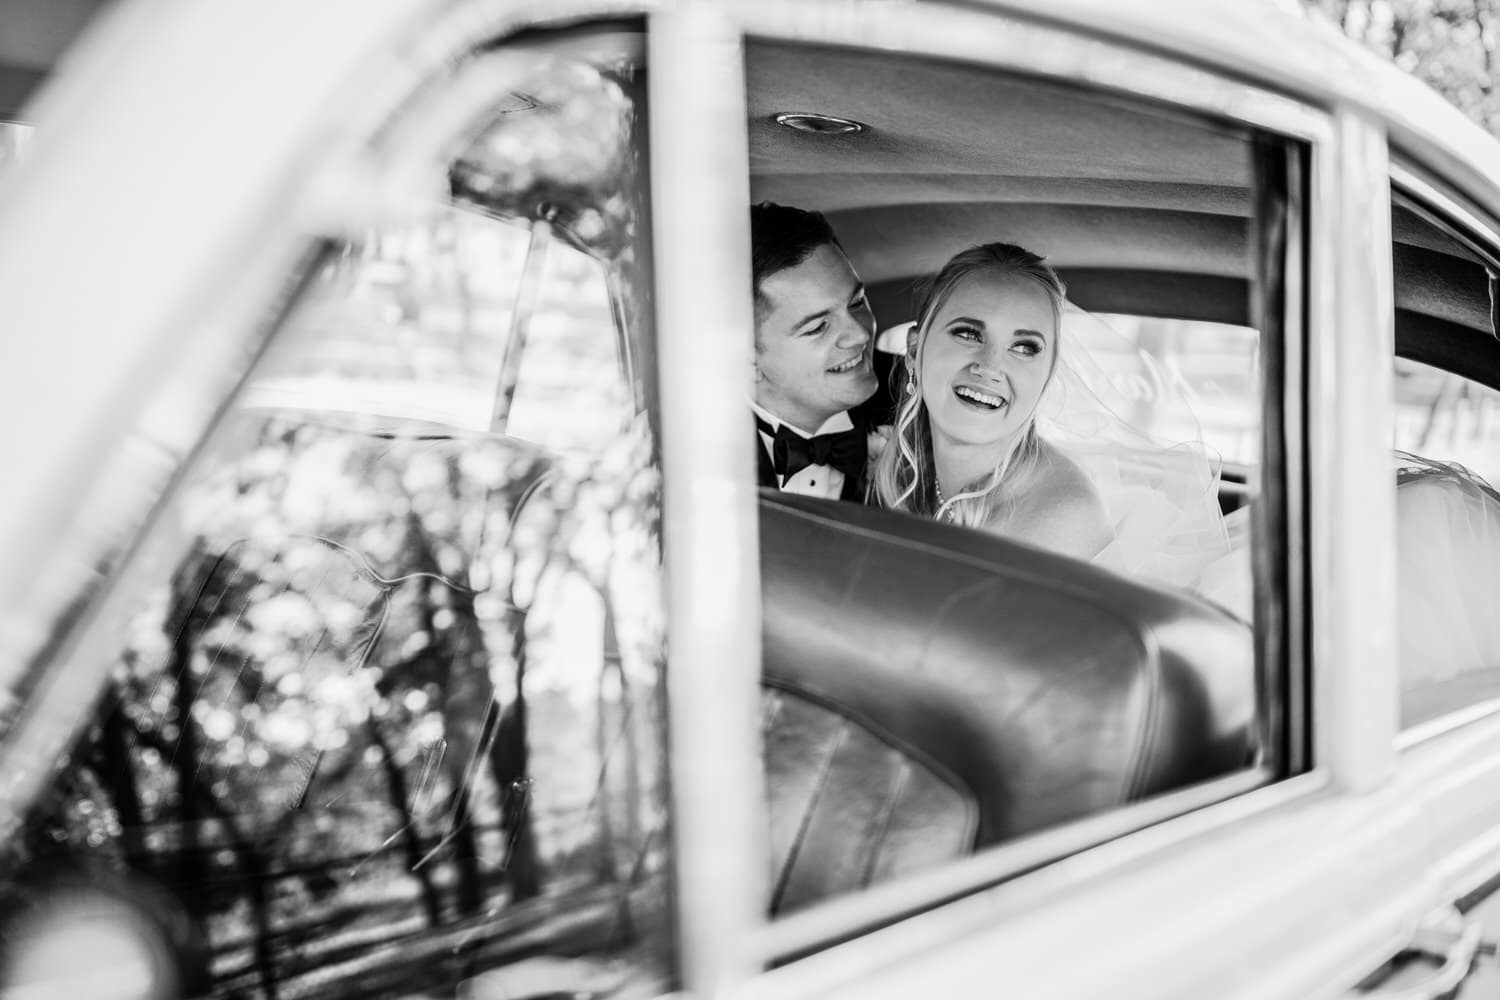 A Rolls Royce Calgary wedding vintage vehicle with a bride and groom inside